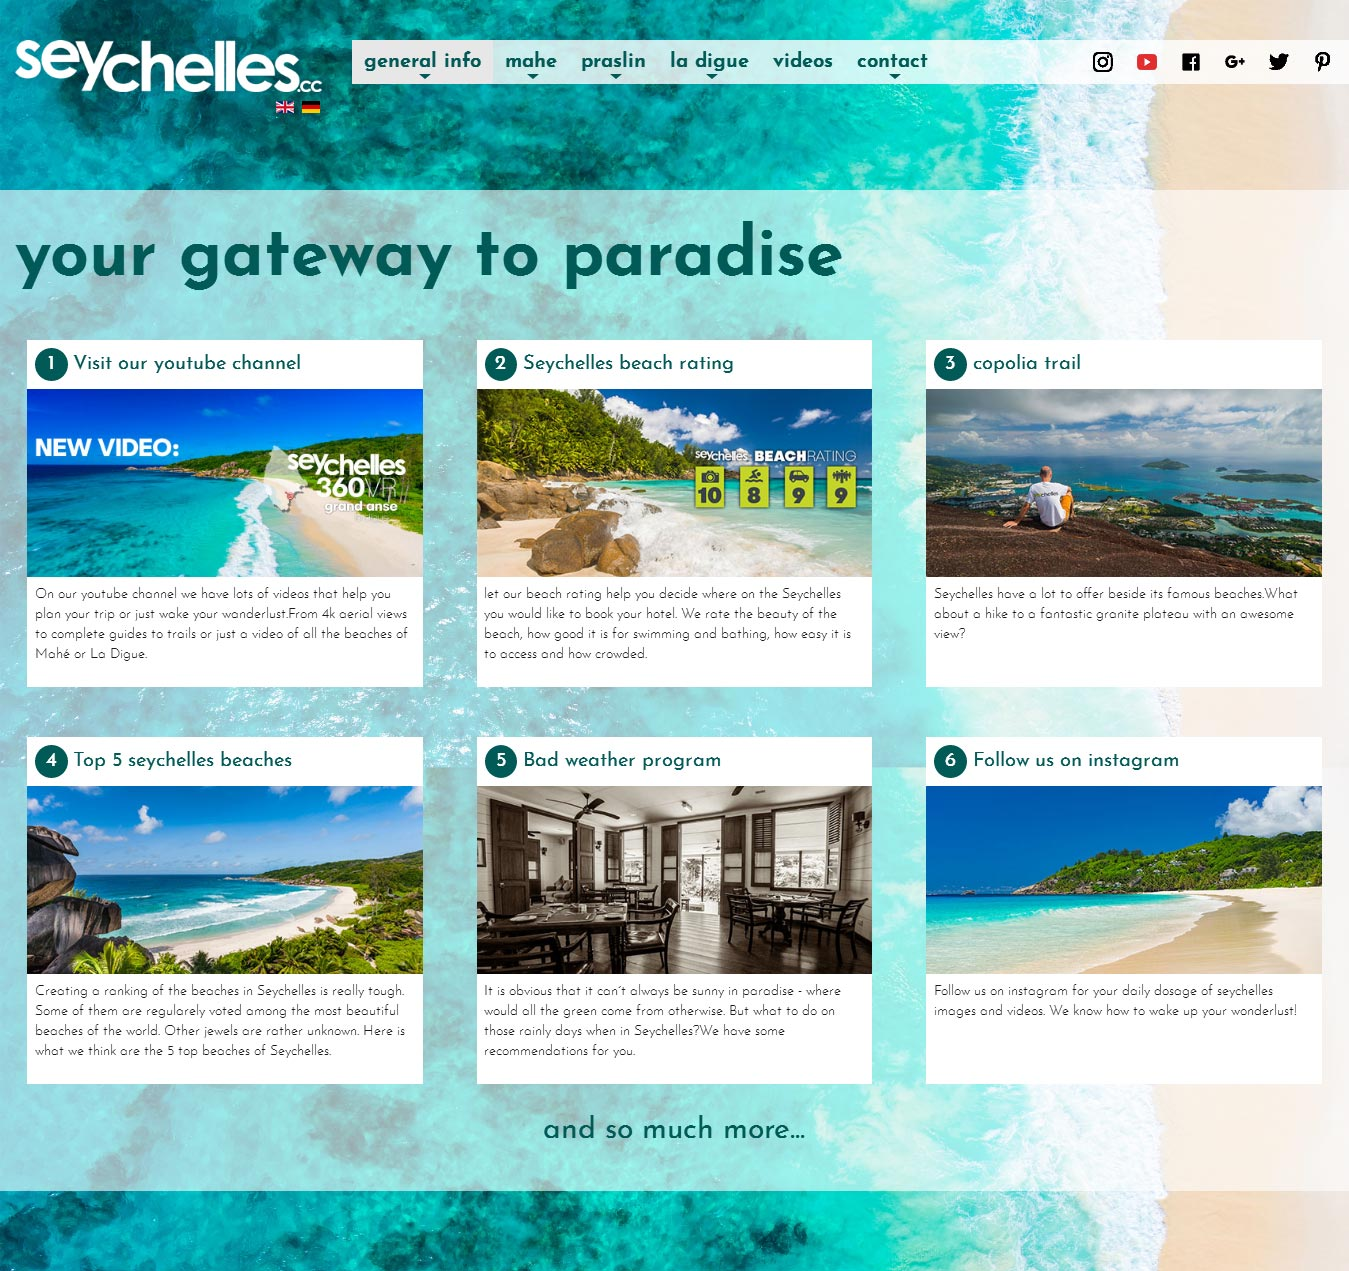 images/seychelles-preview.jpg